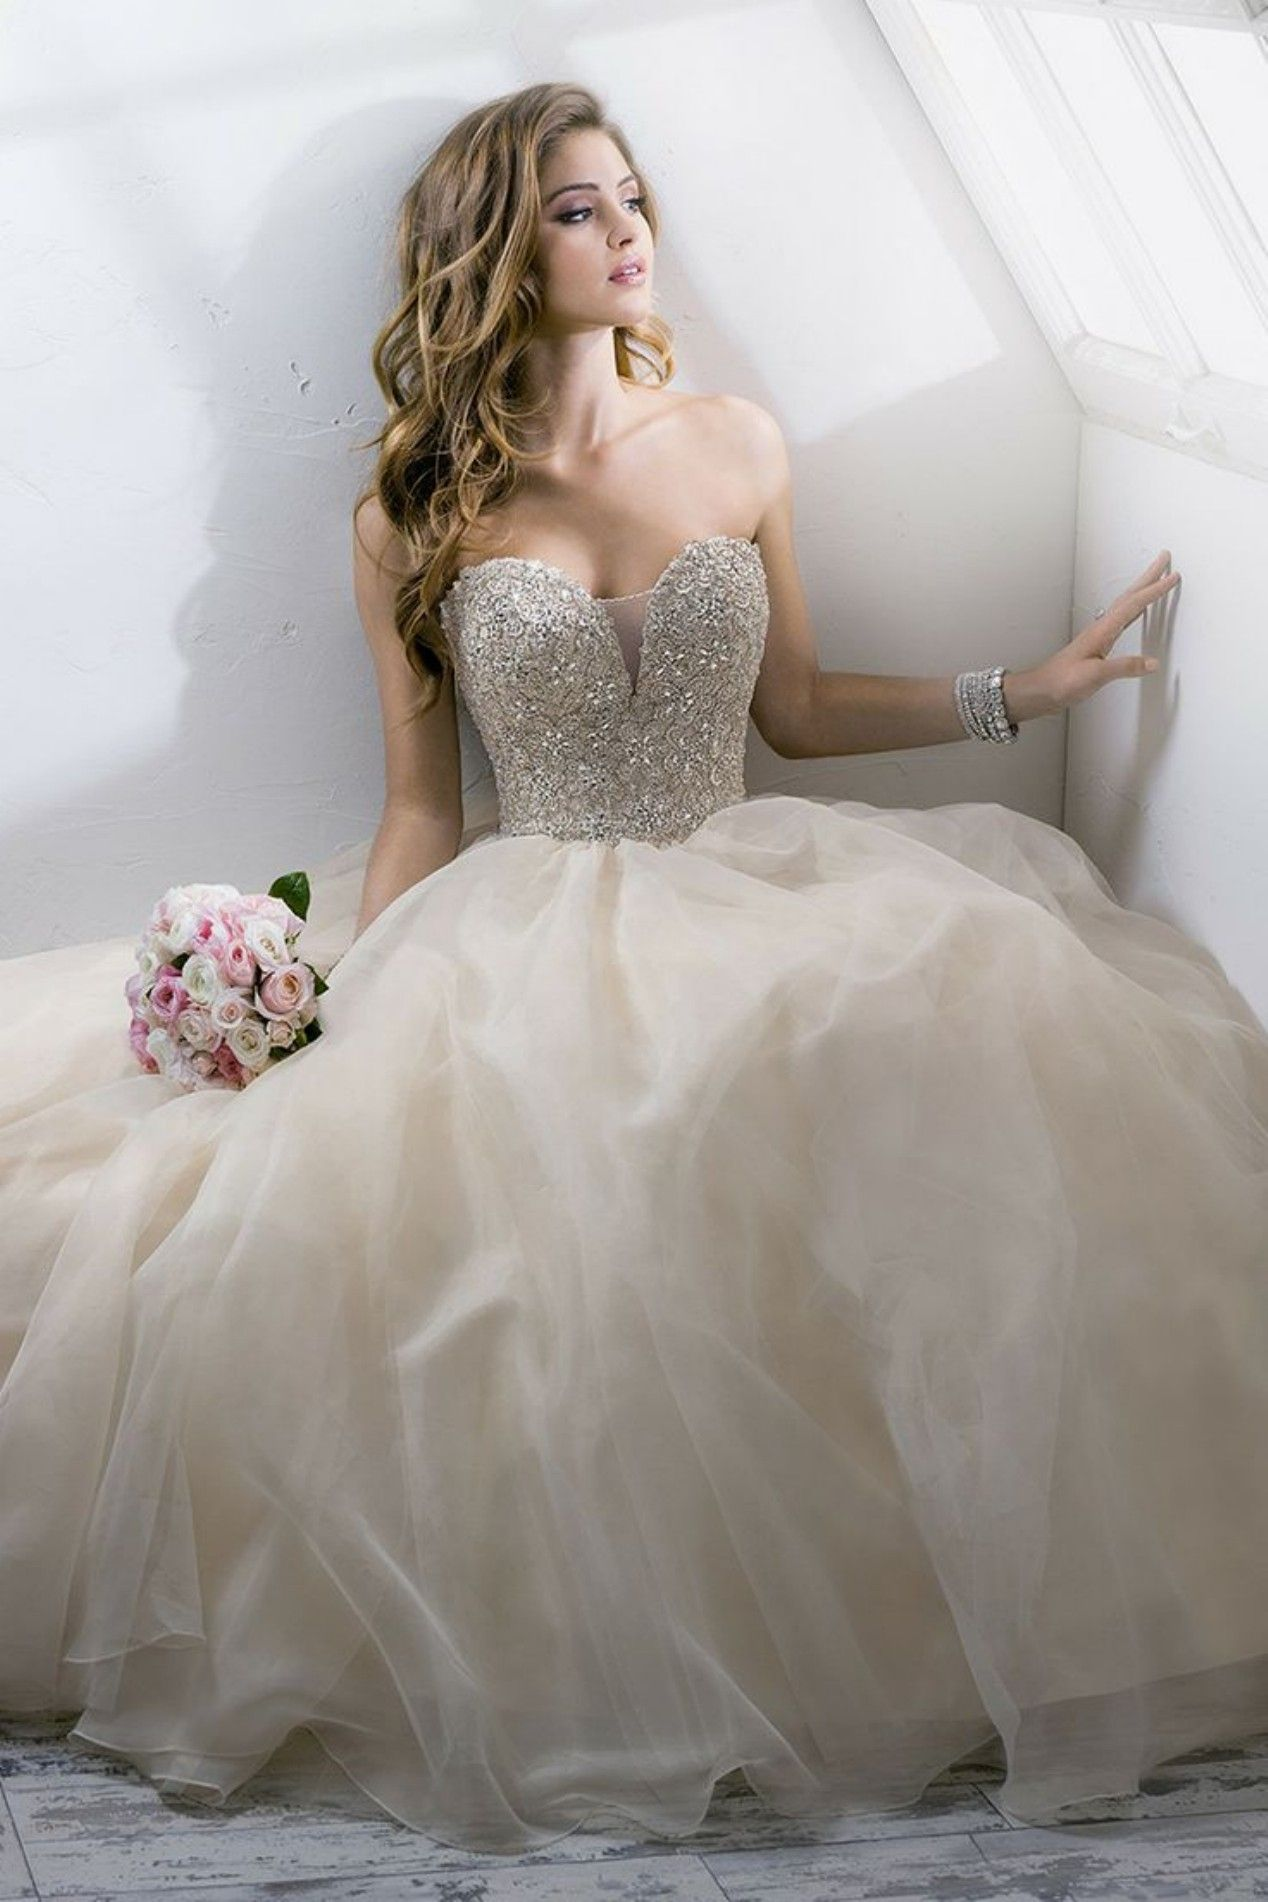 Wedding dresses springfield mo   Breathtaking Disney Princess Wedding Dress to Fullfill your